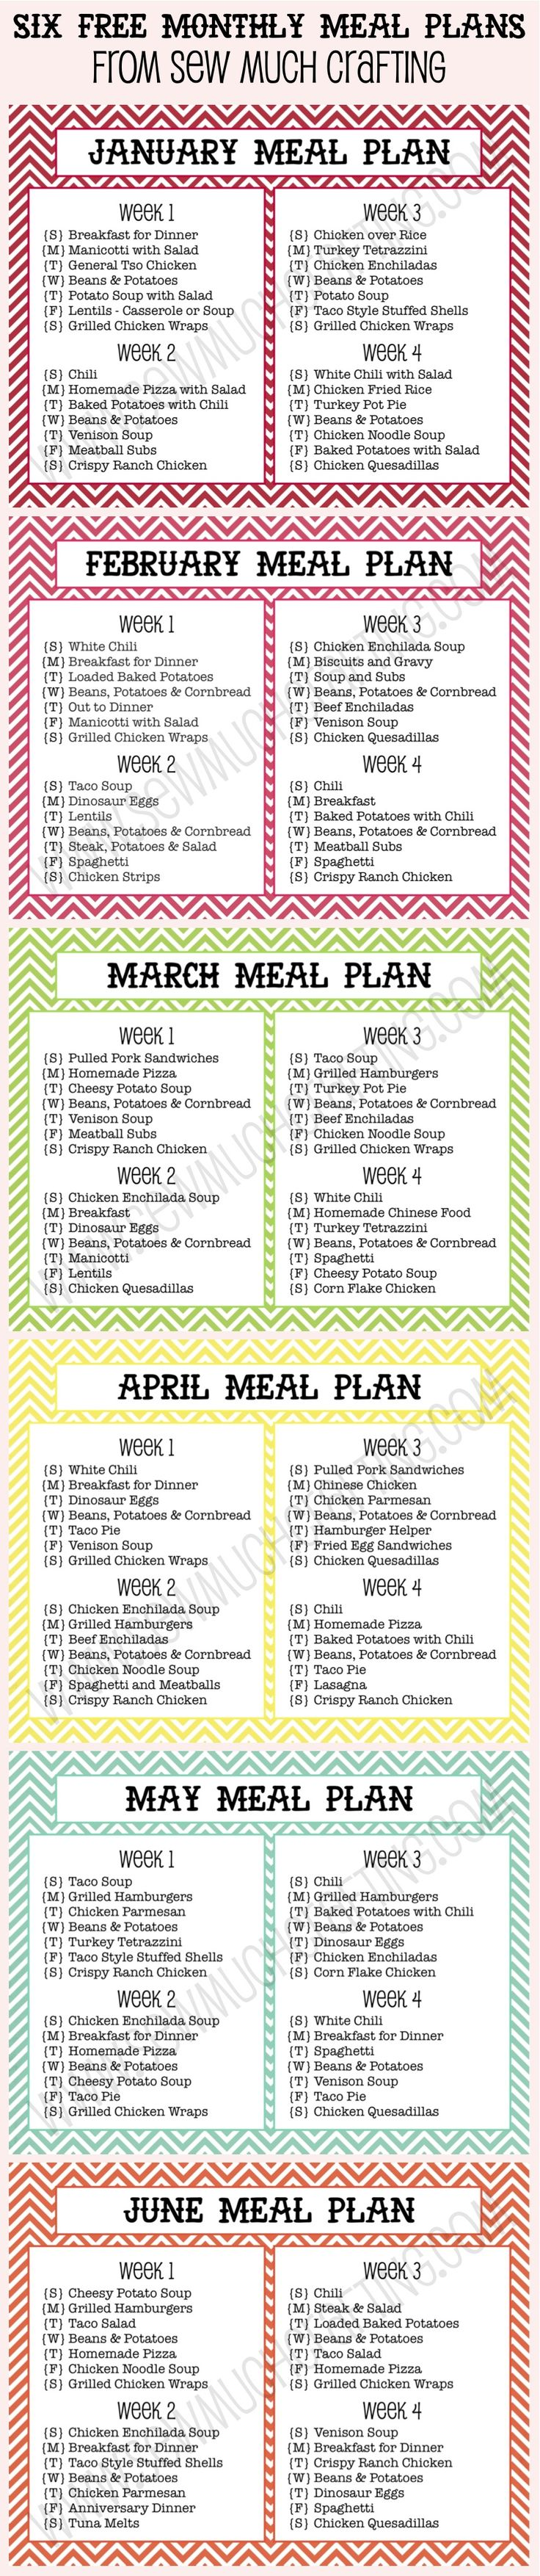 Apr 28,  · It will also provide you with the Food Lovers Diet plan and sample menu. It offers ease of accessibility: you can access the Food Lovers Diet online on your mobile phone, computer, or iPad. All you need is internet access. This is the best plan according to the Food Lovers Diet reviews. The program also claims to offer you customized help/5.